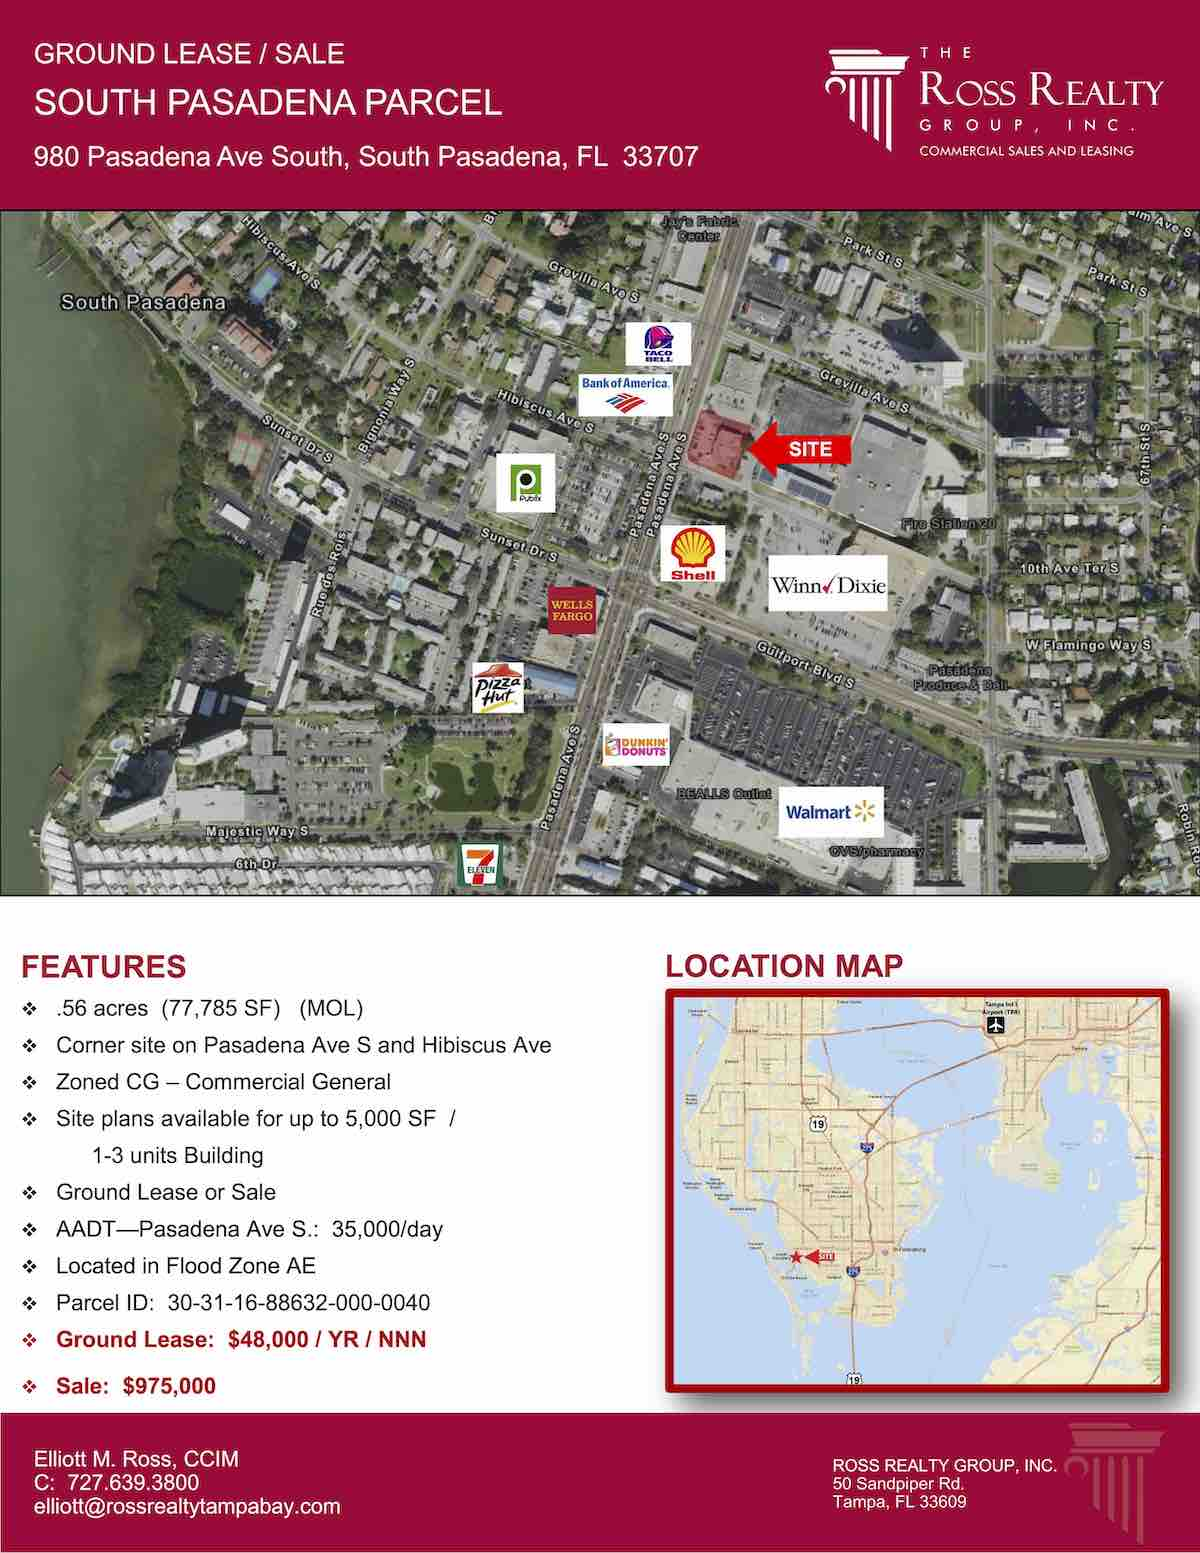 Tampa Commercial Real Estate - GROUND LEASE OR FOR SALE - South Pasadena Parcel - 980 Pasadena Ave South, South Pasadena, FL 33707 P1